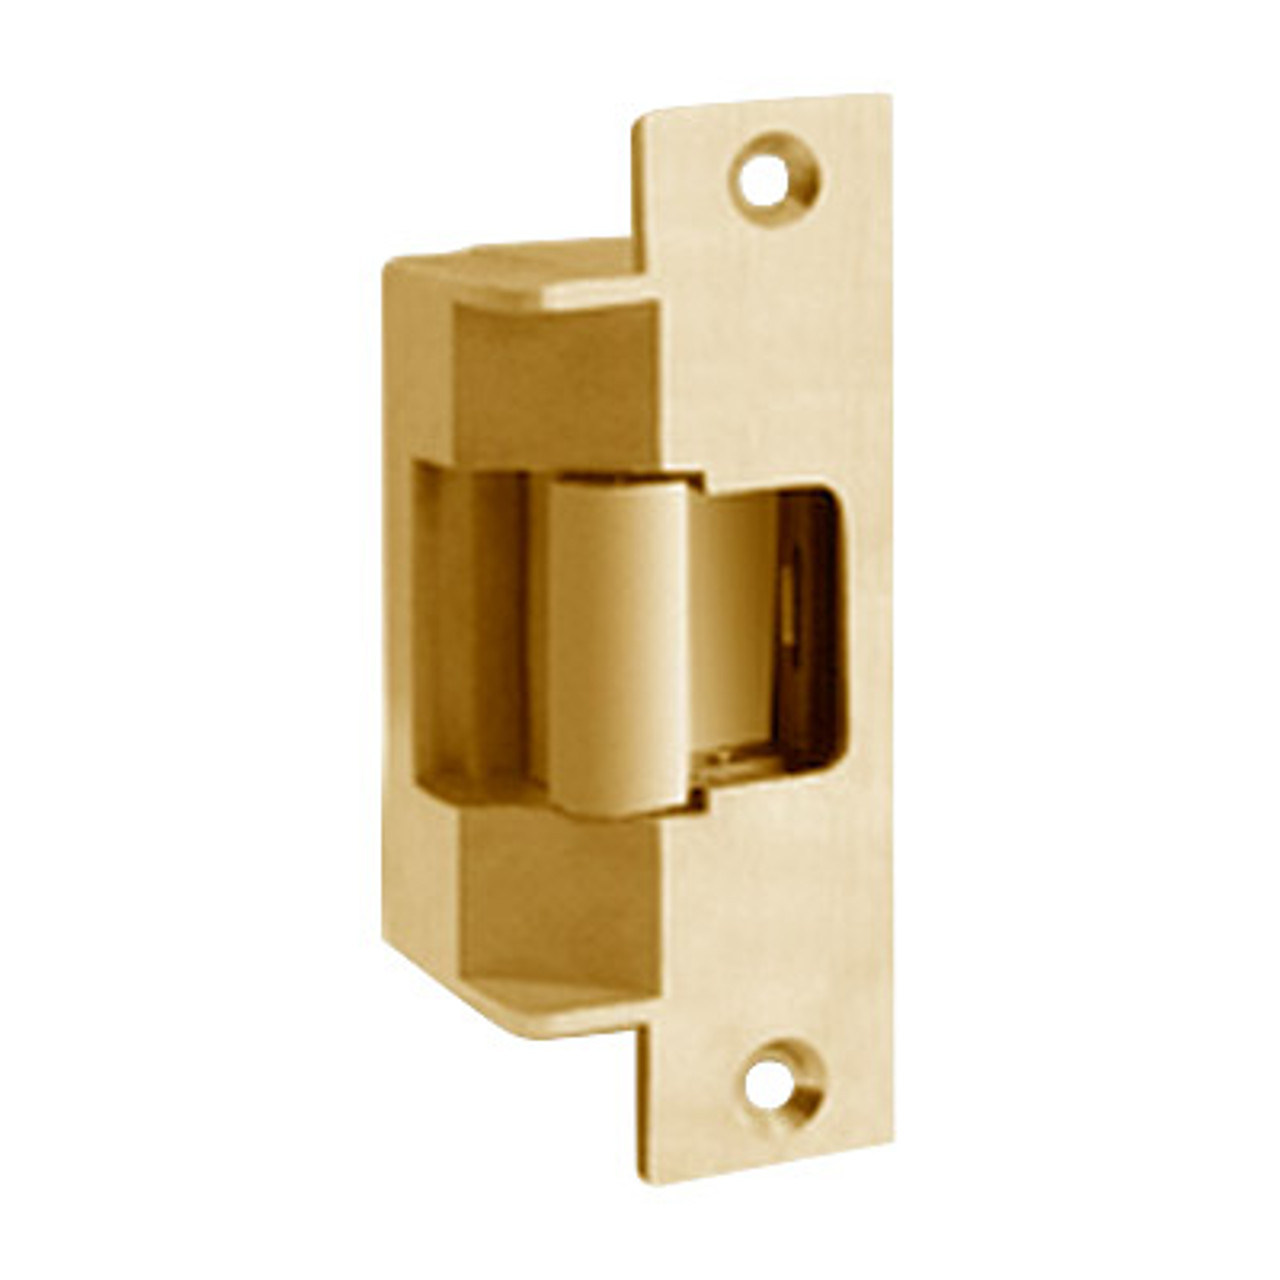 7501-12-612 Hes Electric Strike in Satin Bronze Finish